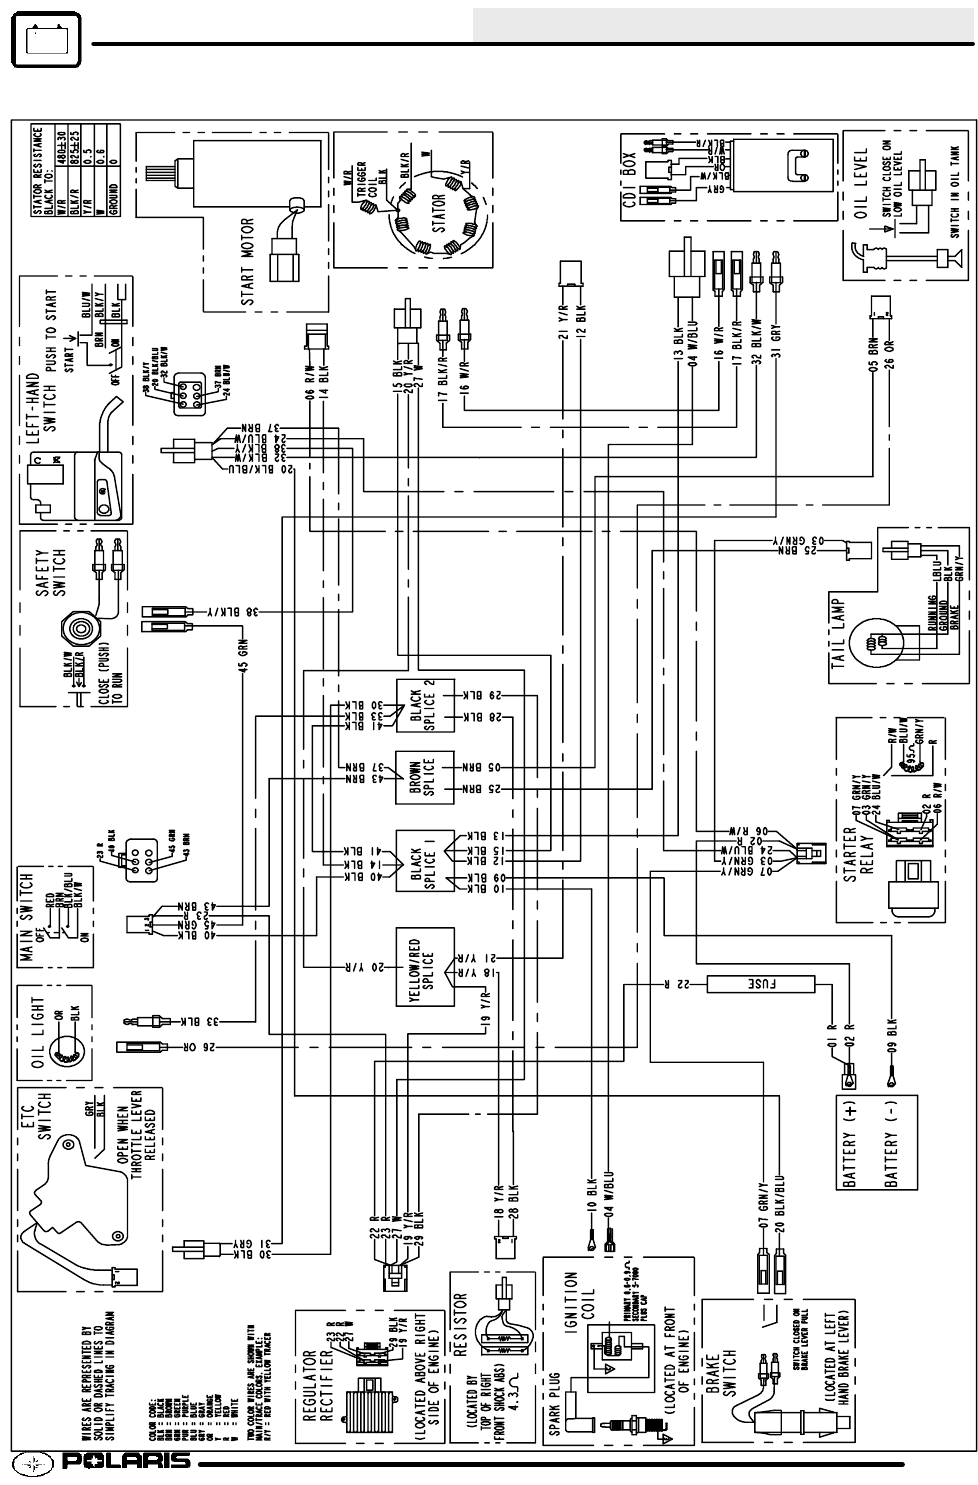 2008 polaris predator wiring diagram